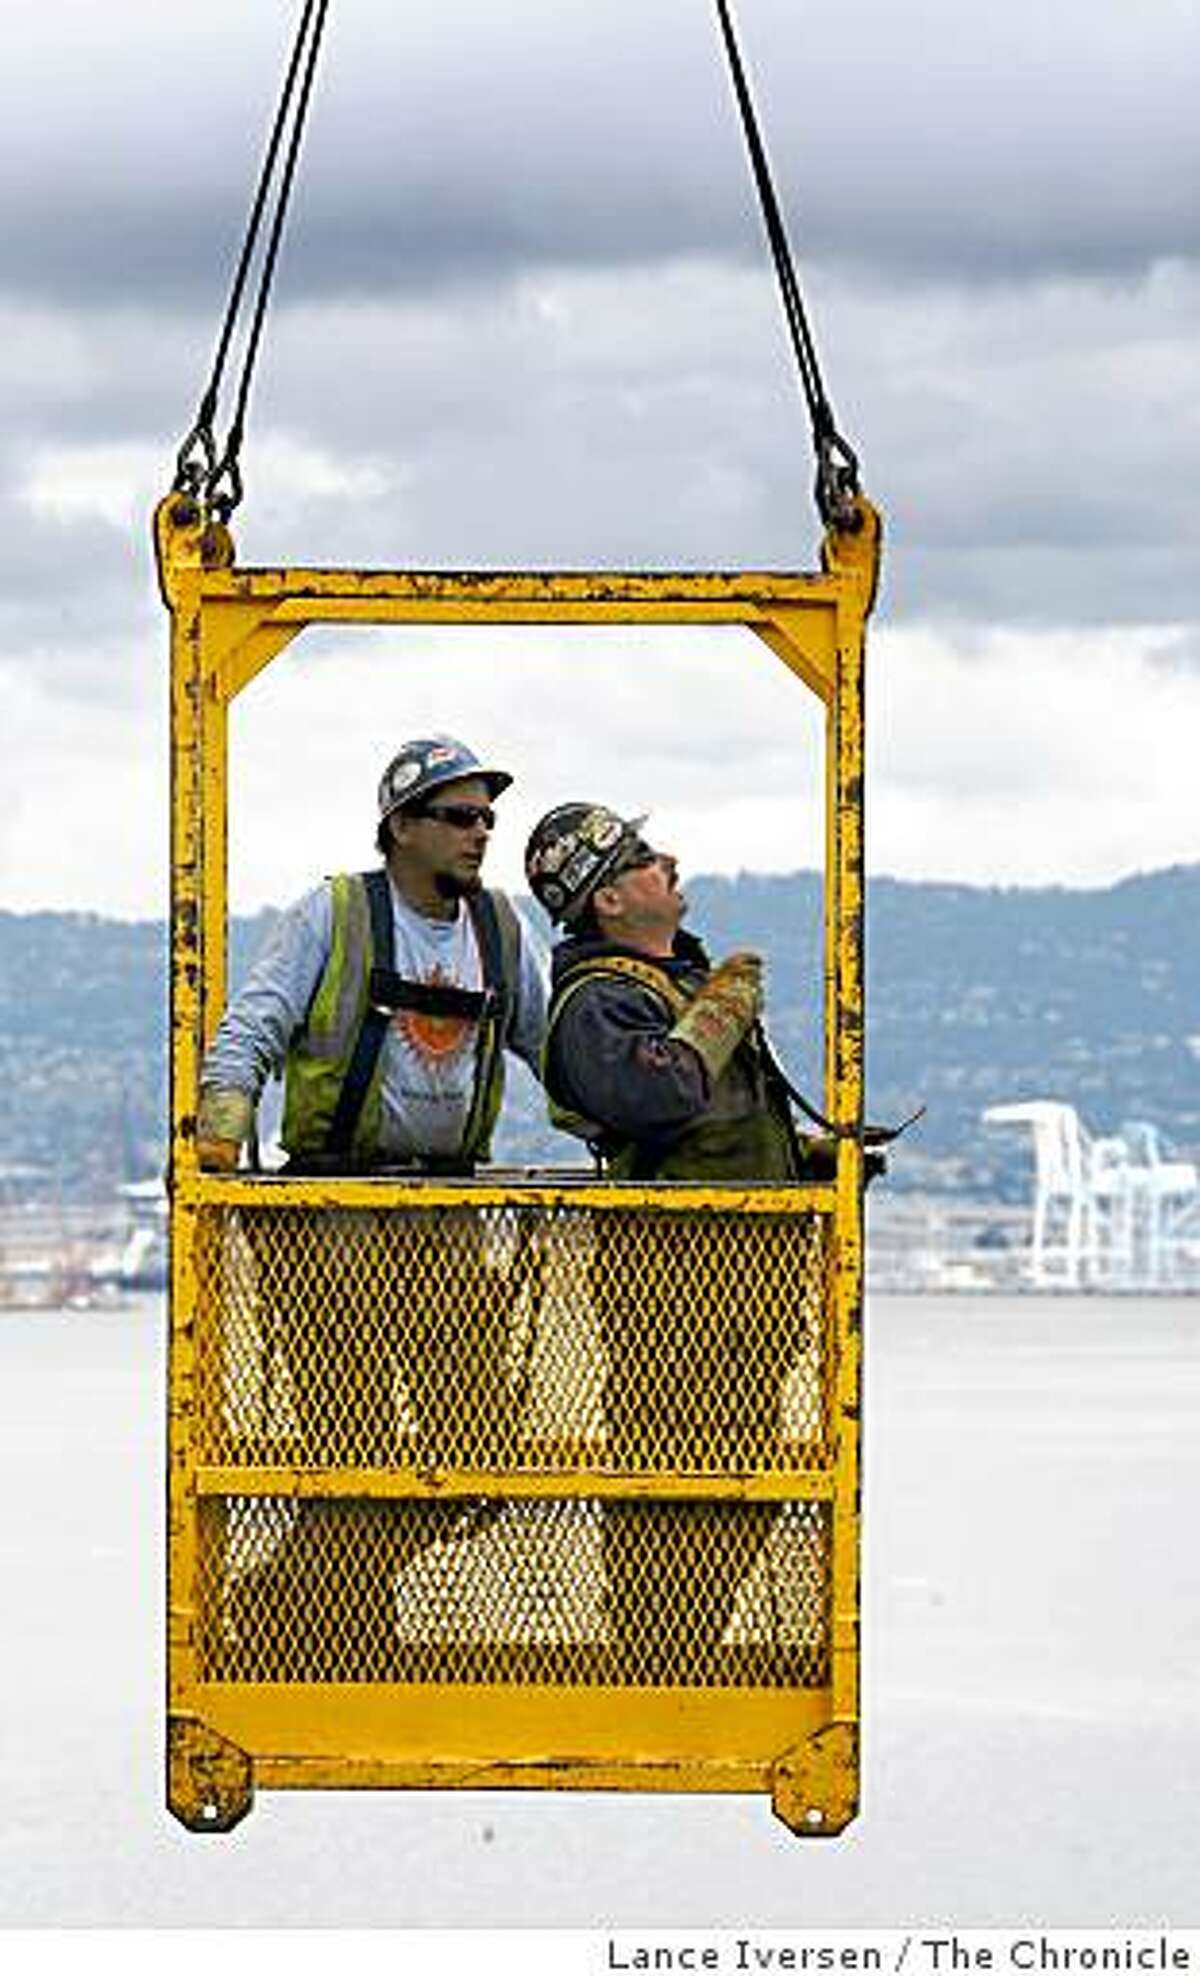 Iron workers are ferried with the use of a giant grane, between elevations as they work on the new temporary detour span of the San Francisco-Oakland Bay Bridge that will connect to the old gray steal portion of the bridge east of Yerba Buena Island Labor Day weekend. Wednesday, April 8, 2009